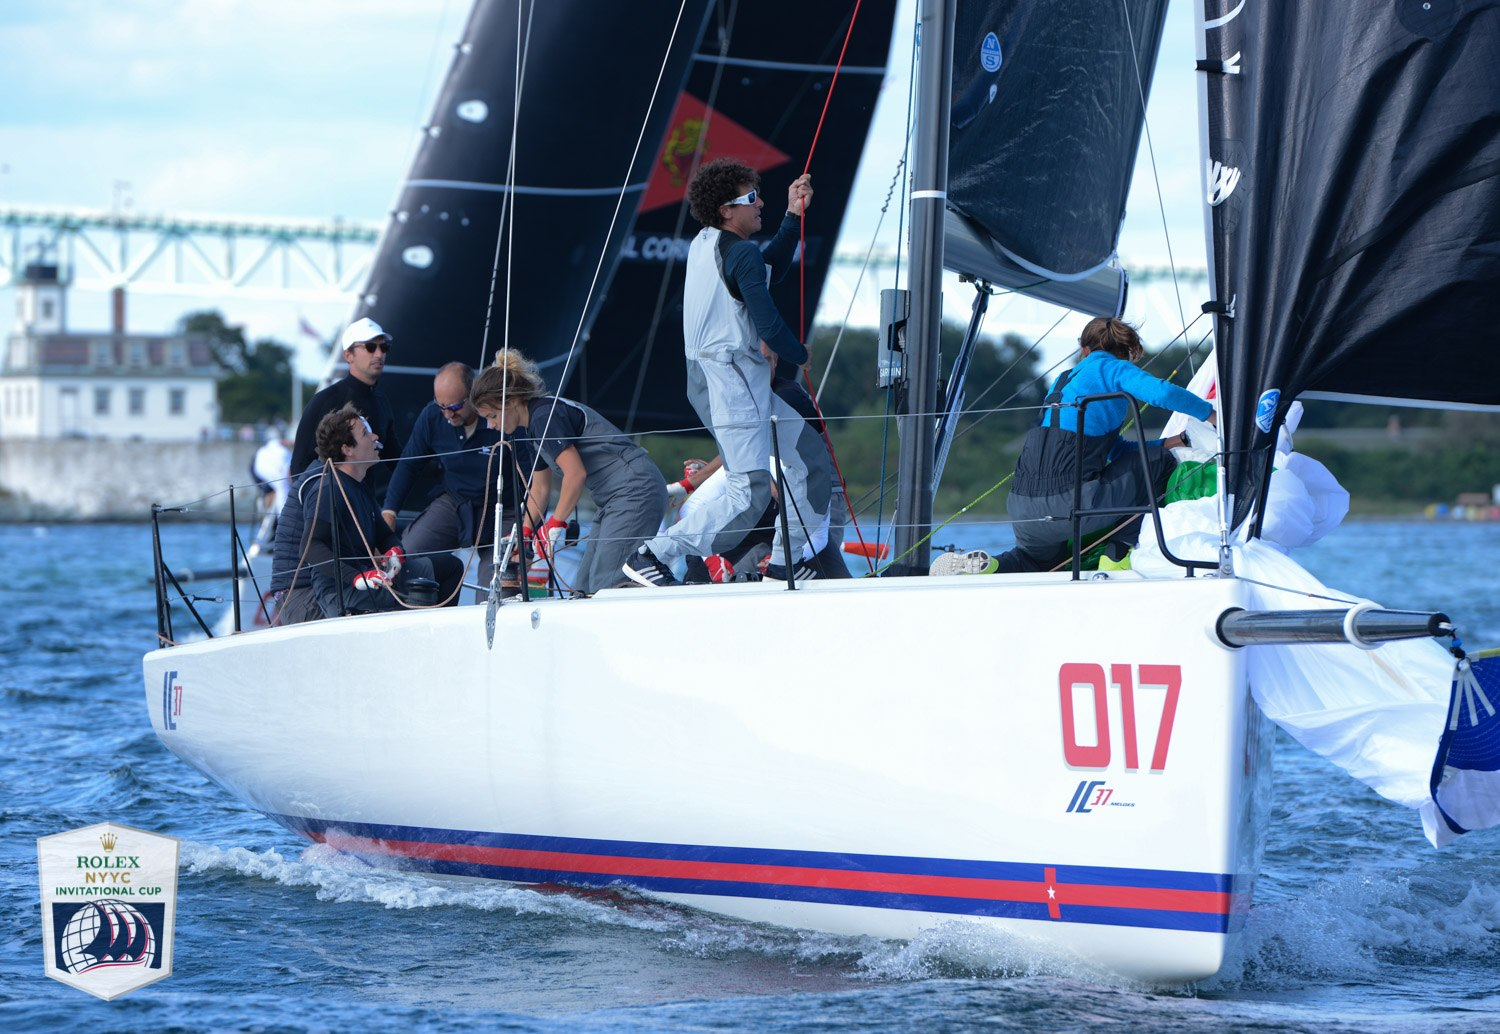 Il YCCS Race Team alla Rolex NYYC Invitational Cup - NEWS - Yacht Club Costa Smeralda